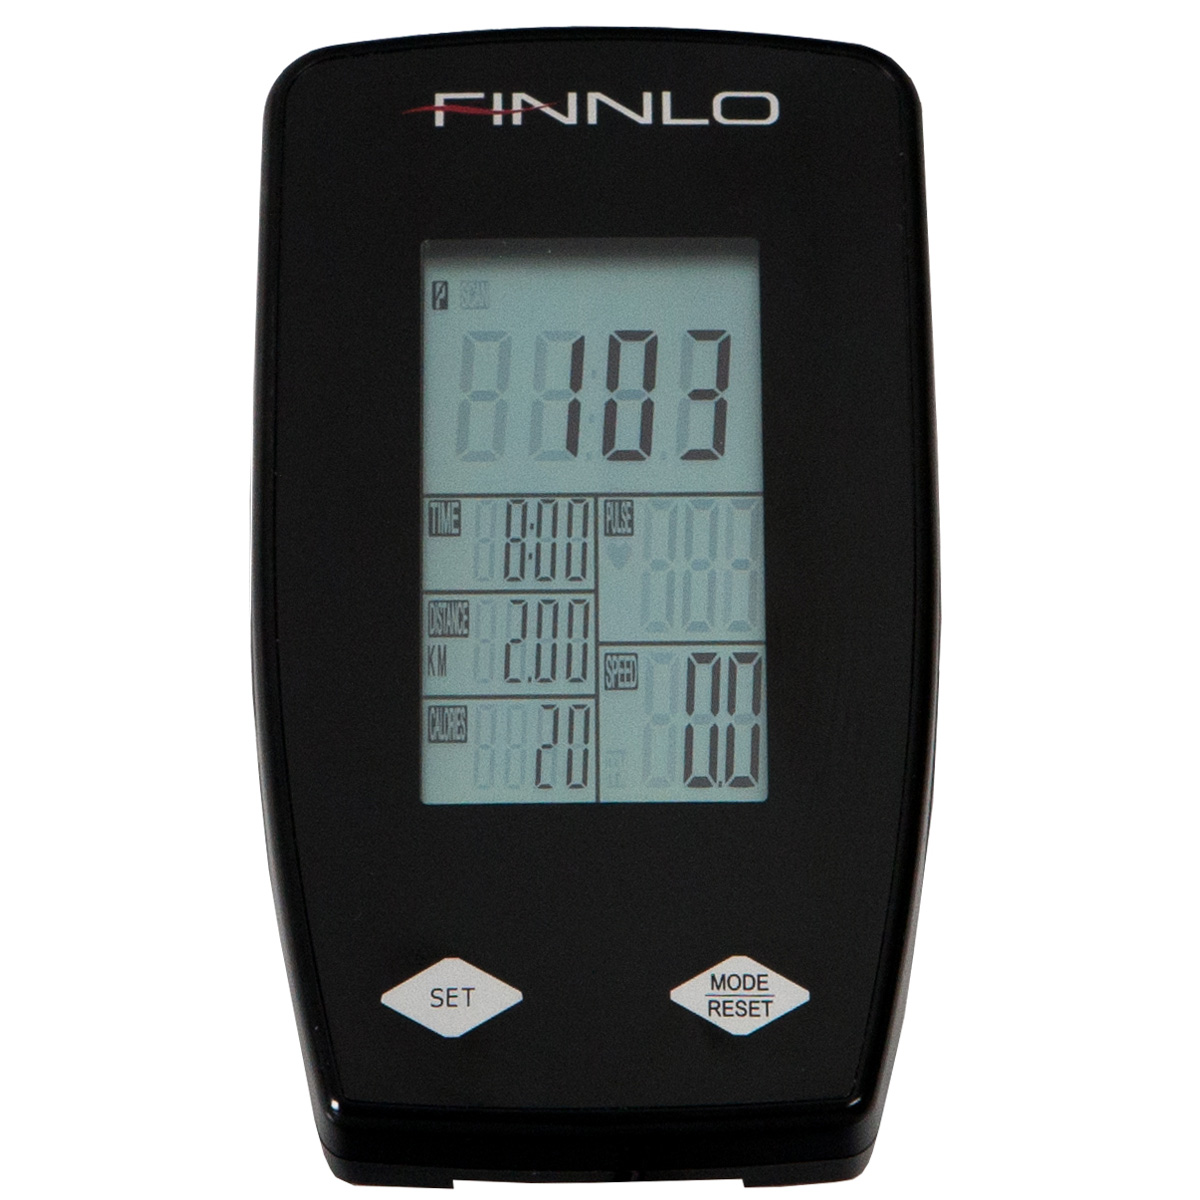 Finnlo Speedbike pc